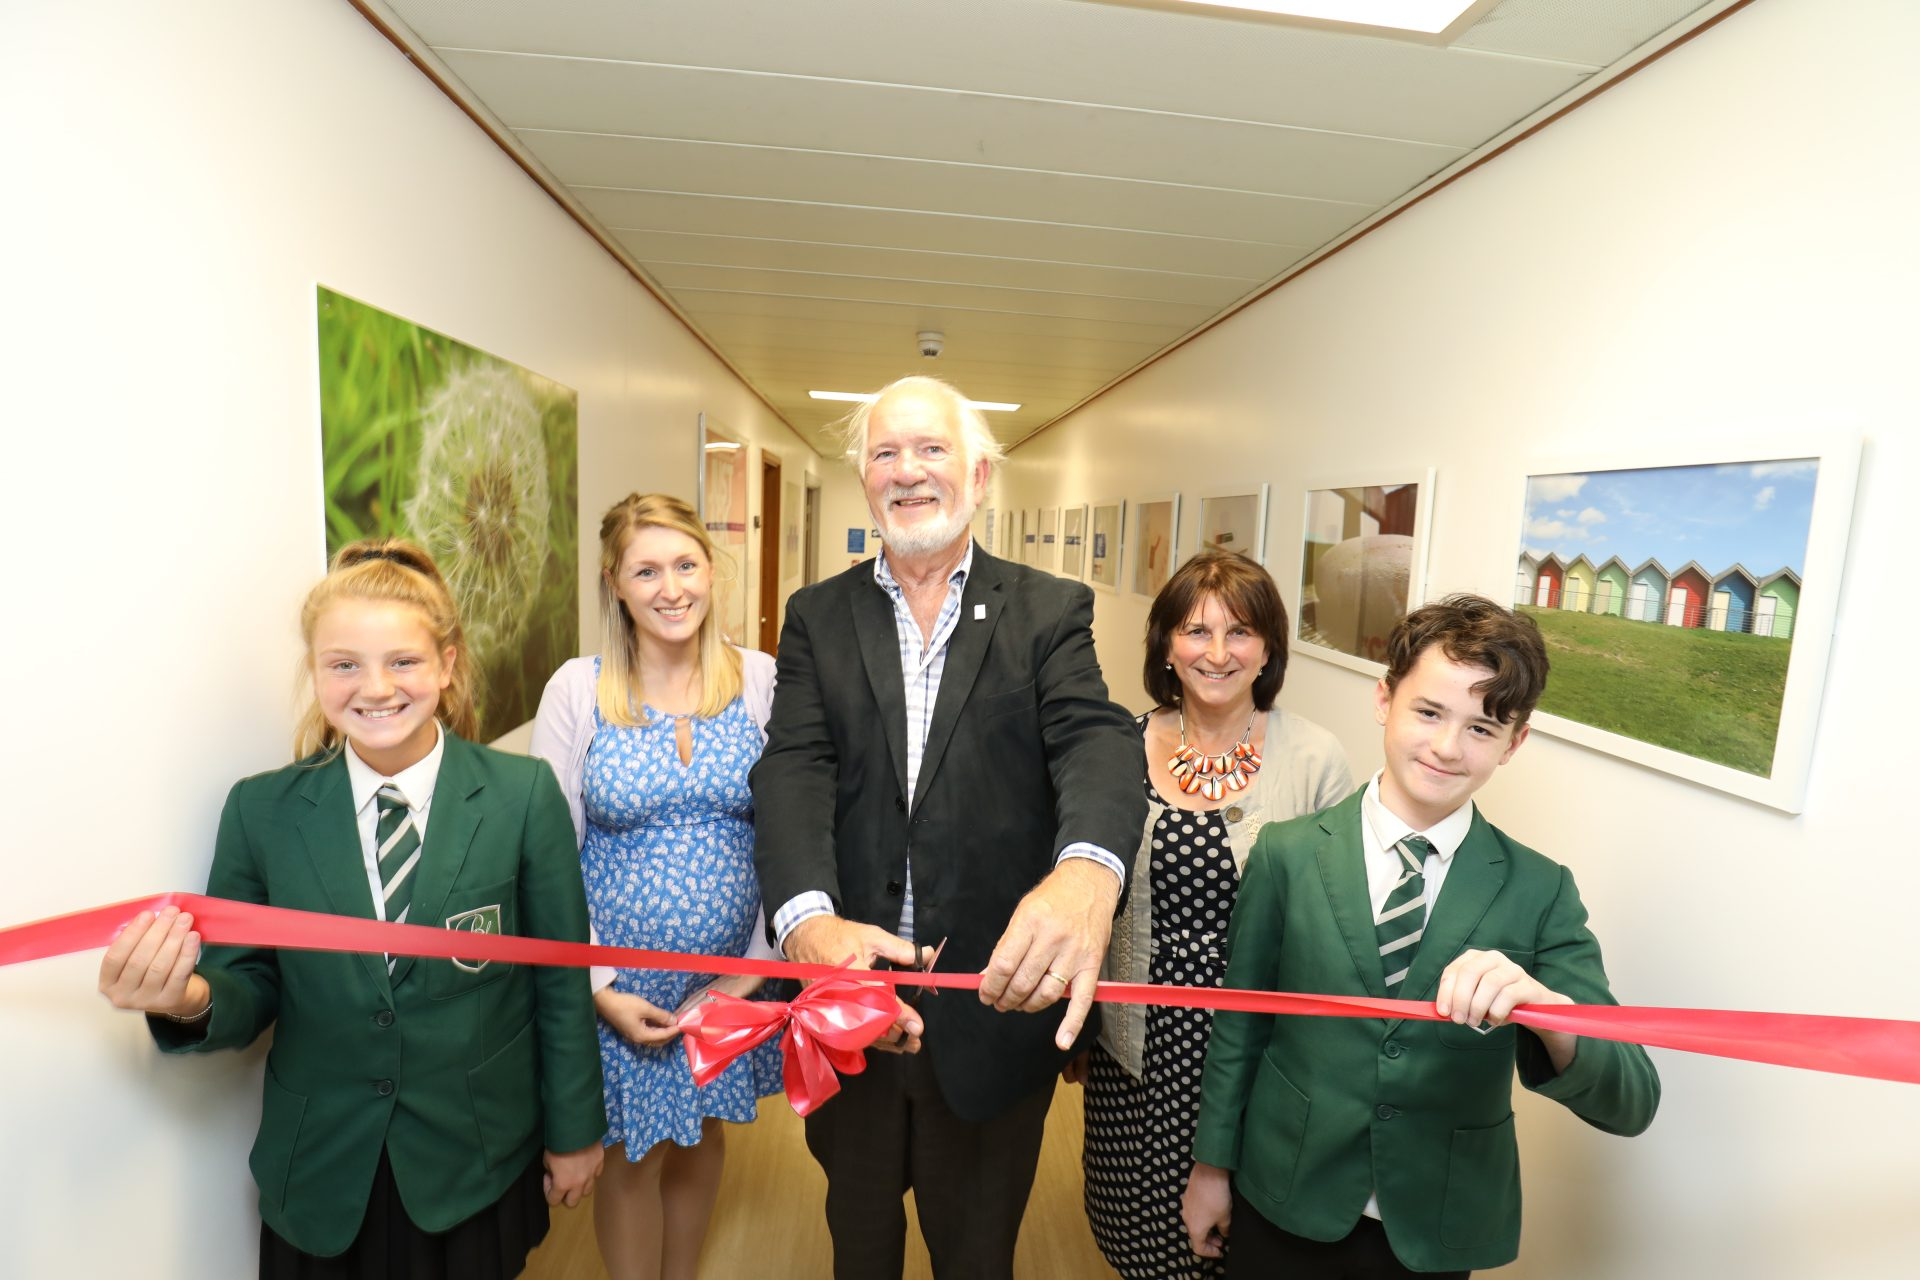 Photography exhibition by Bede Academy unveiled at Blyth Community Hospital, July 2018